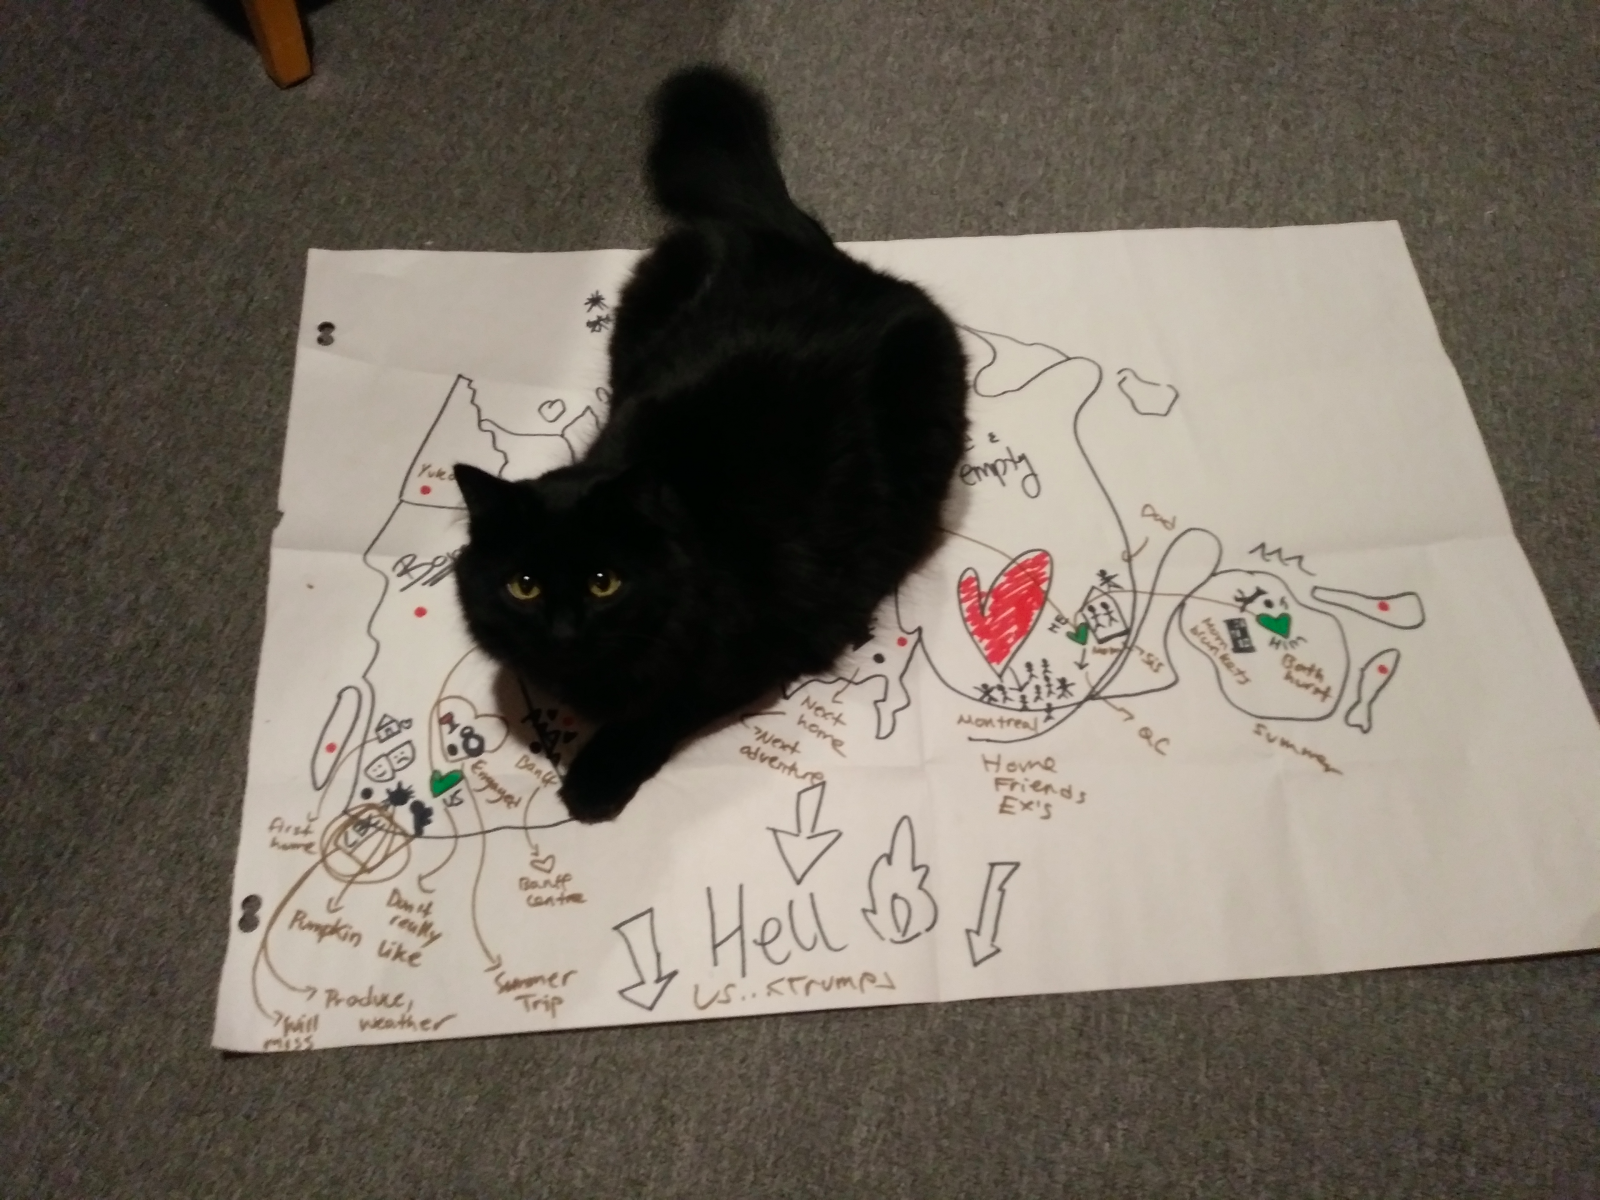 black cat sitting atop a paper with a character mapping exercise for Block A